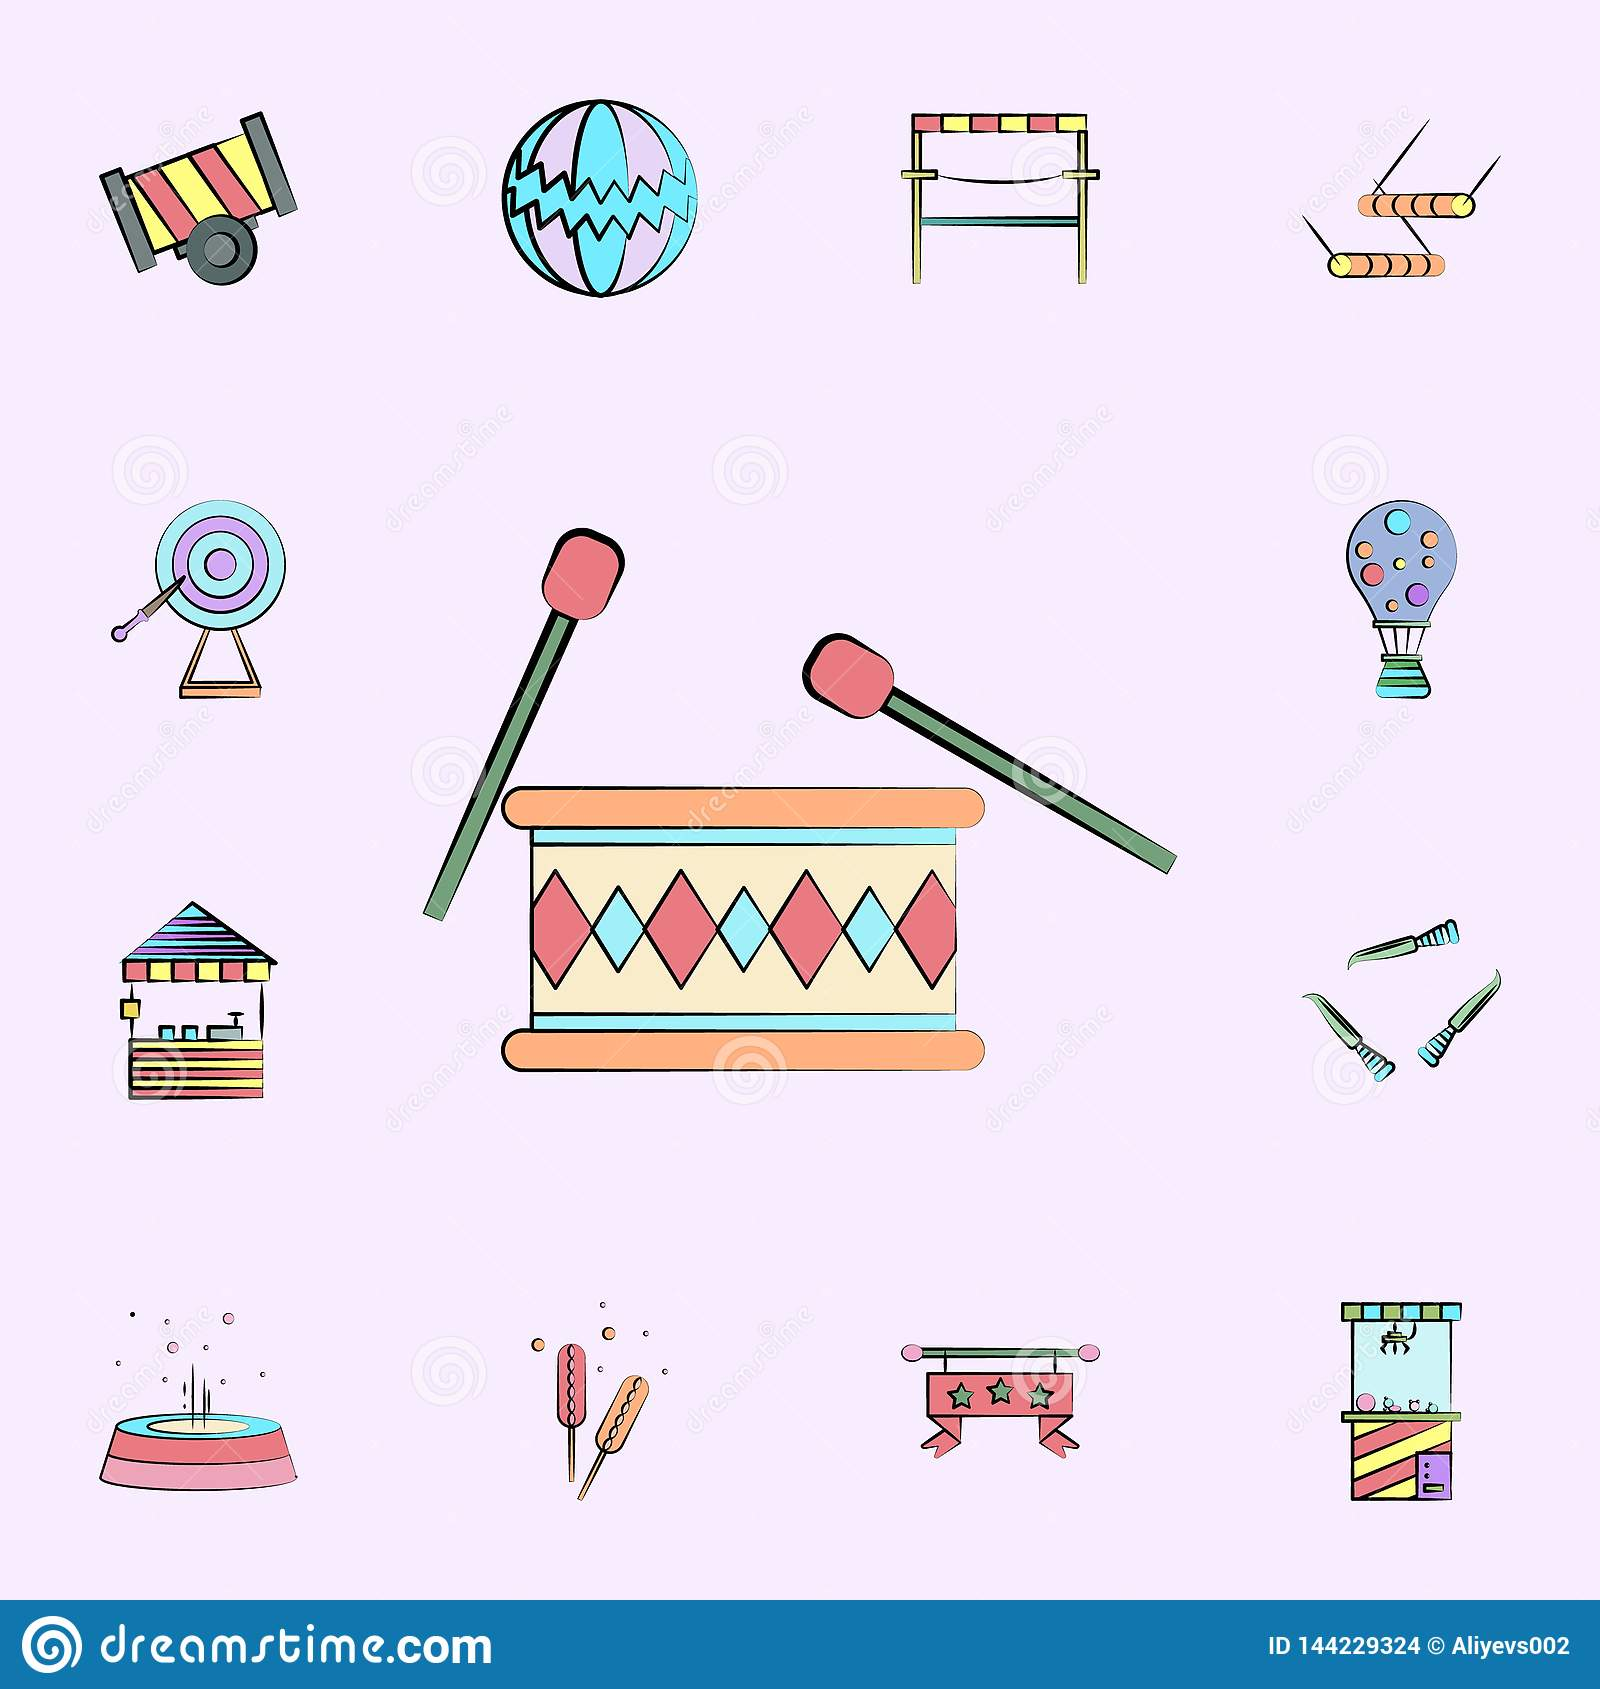 drum with chopsticks colored icon. circus icons universal set for web and mobile